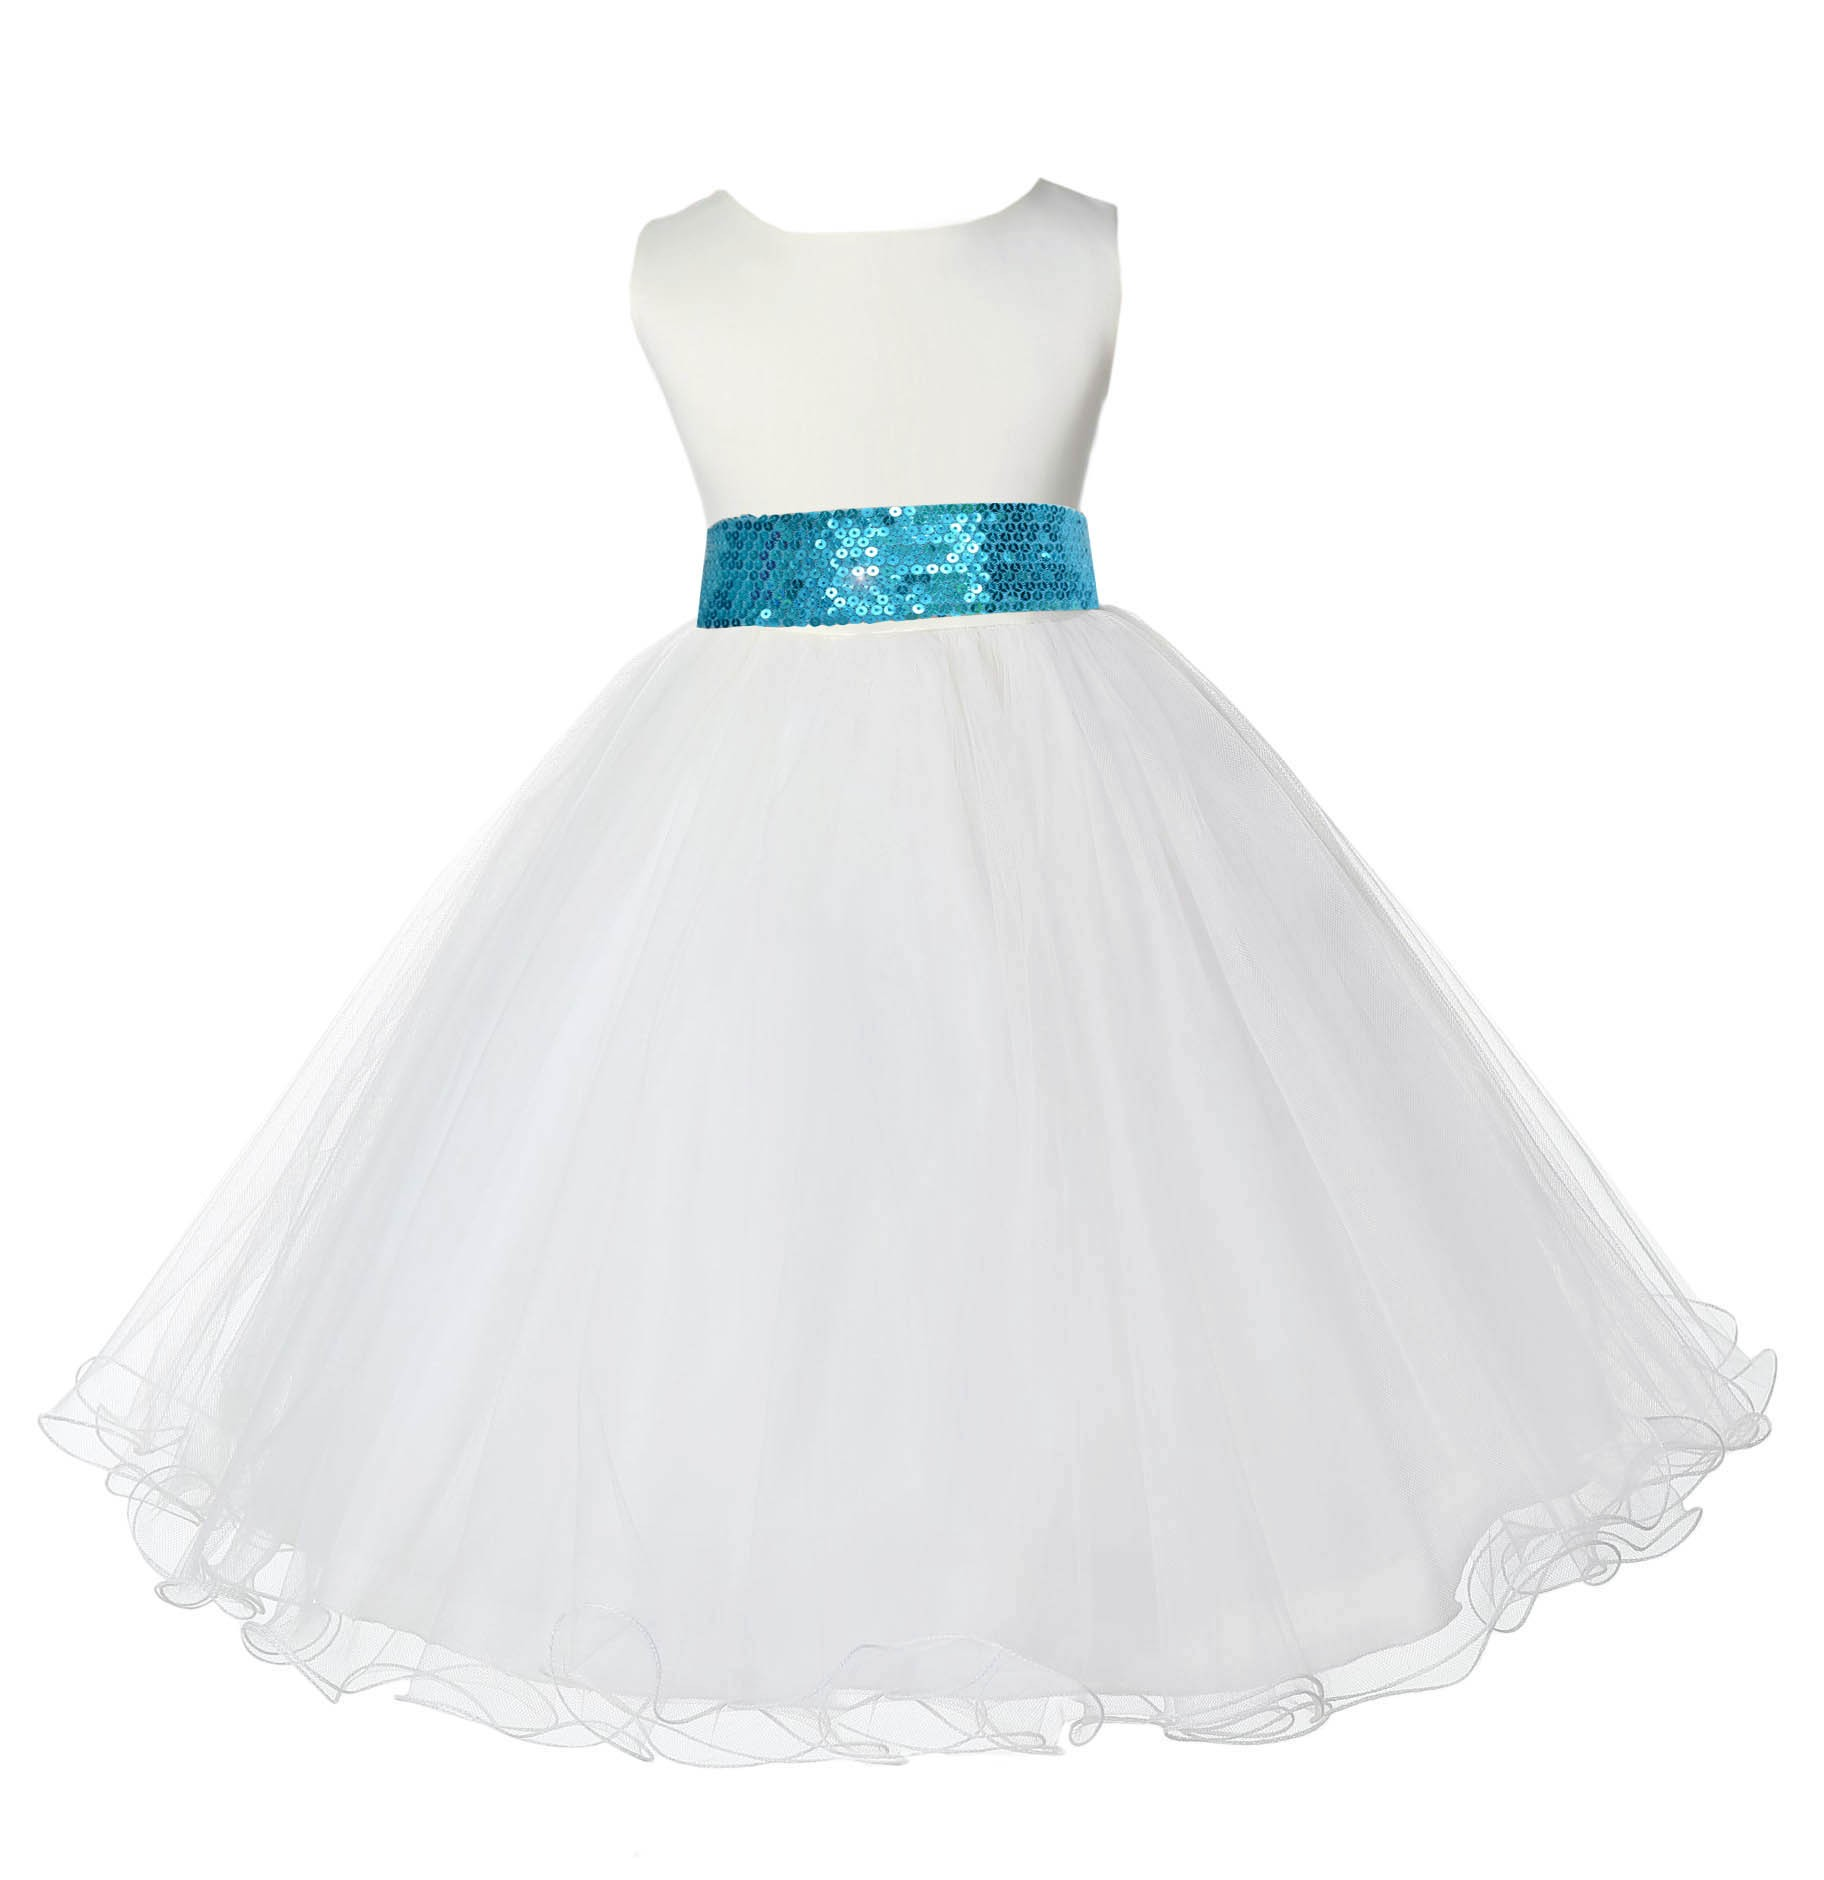 Ivory Tulle Rattail Edge Turquoise Sequin Sash Flower Girl Dress 829mh